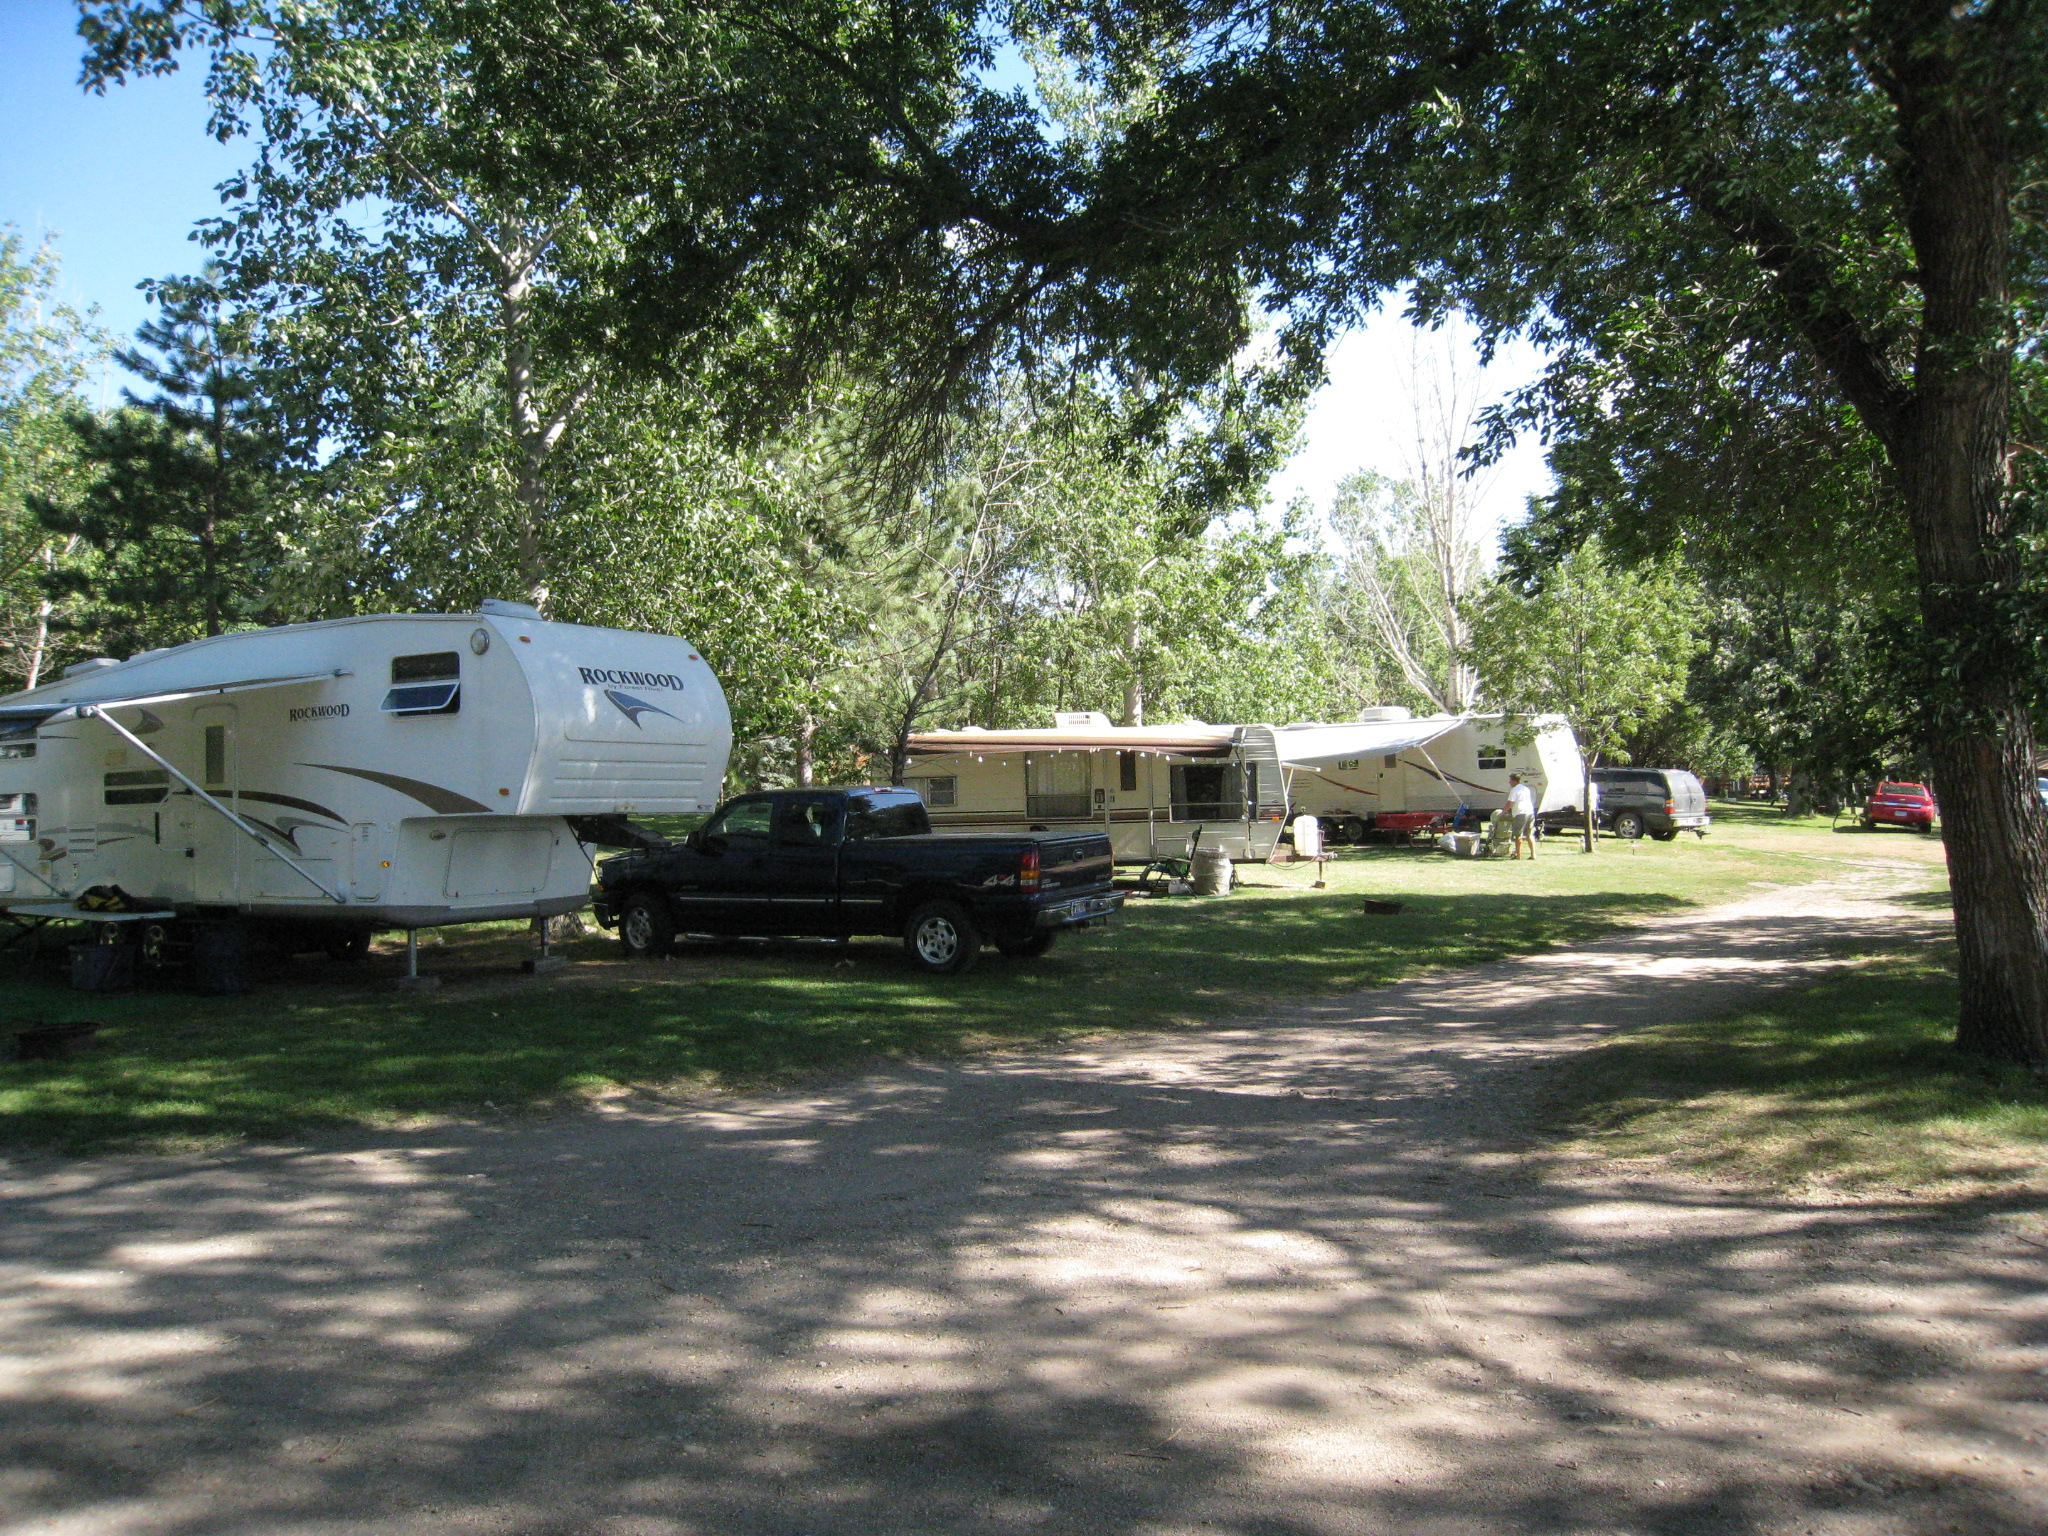 Minnesota Resorts MN RV Camping And Seasonal Park At Shady Rest